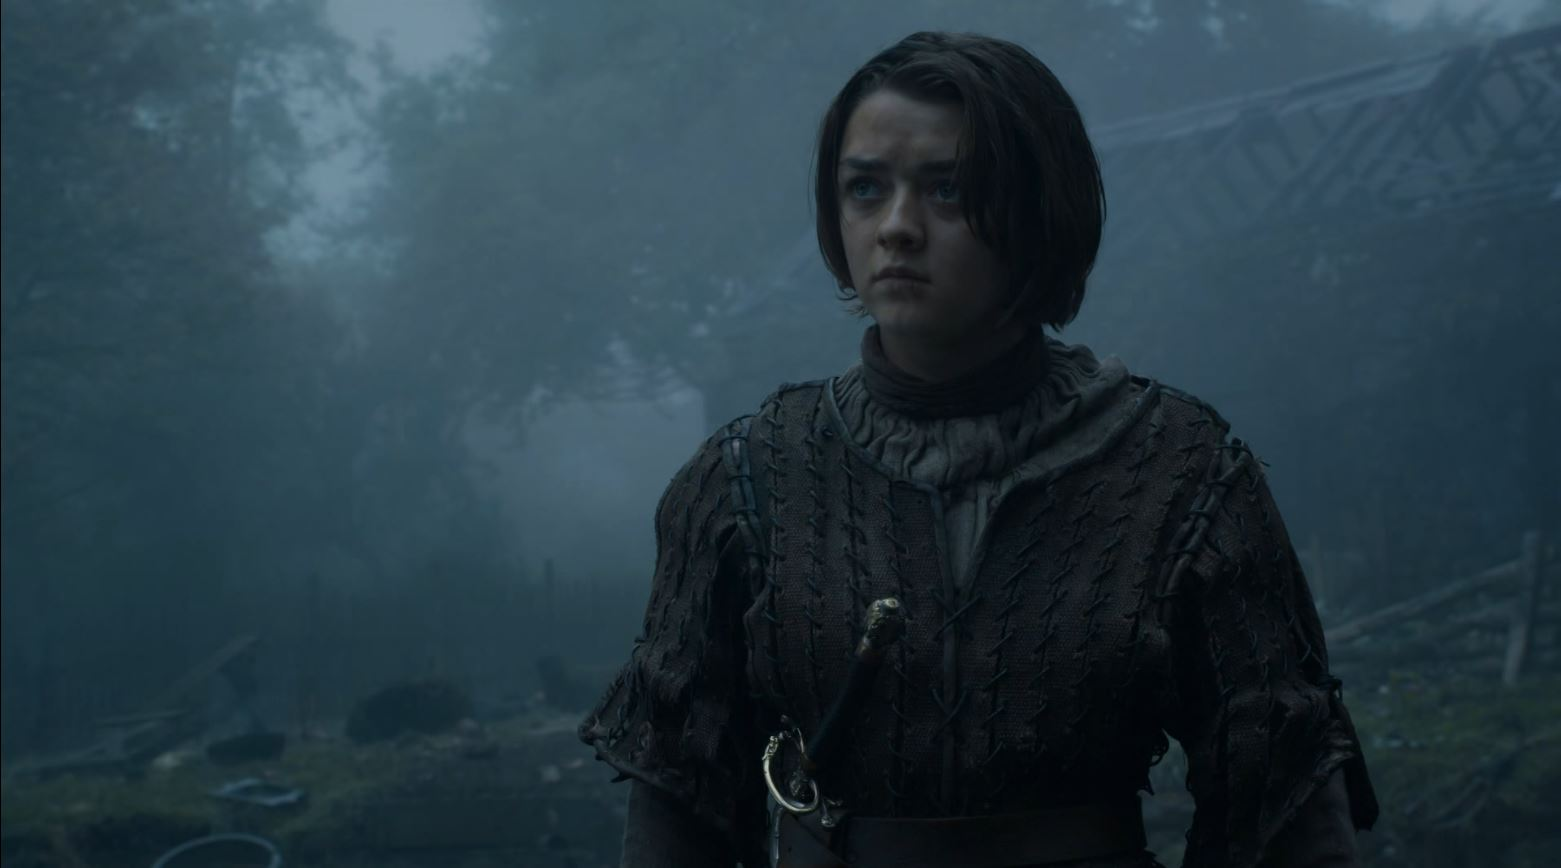 Game Of Thrones S4Ep7 Mockingbird Review - Maisie Williams as Arya Stark